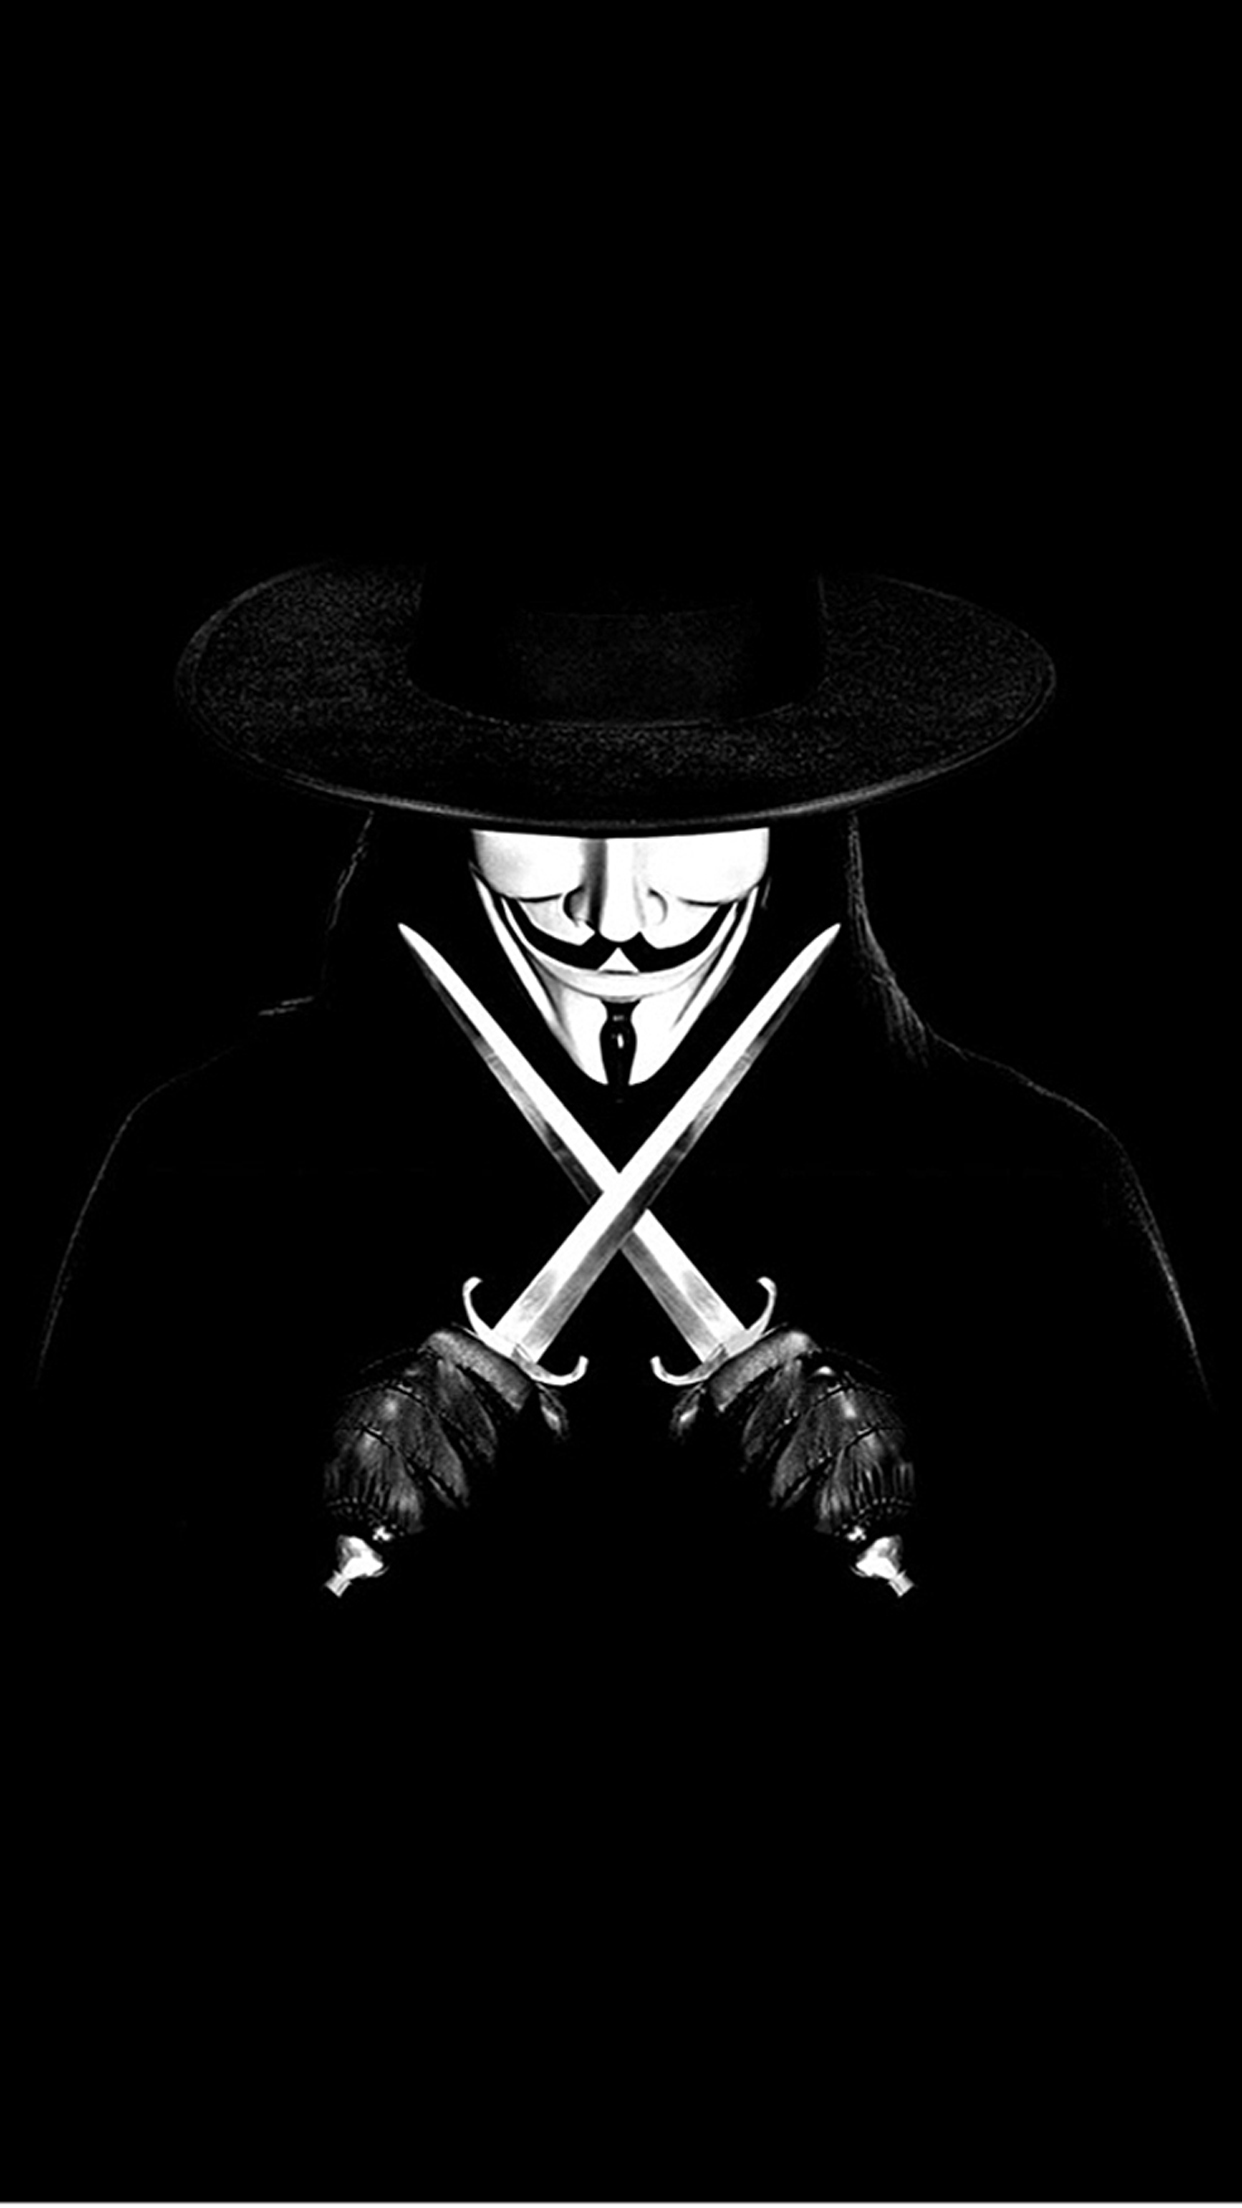 Wallpaper For Iphone 5s Black Anonymous V For Vendetta Wallpaper For Iphone X 8 7 6